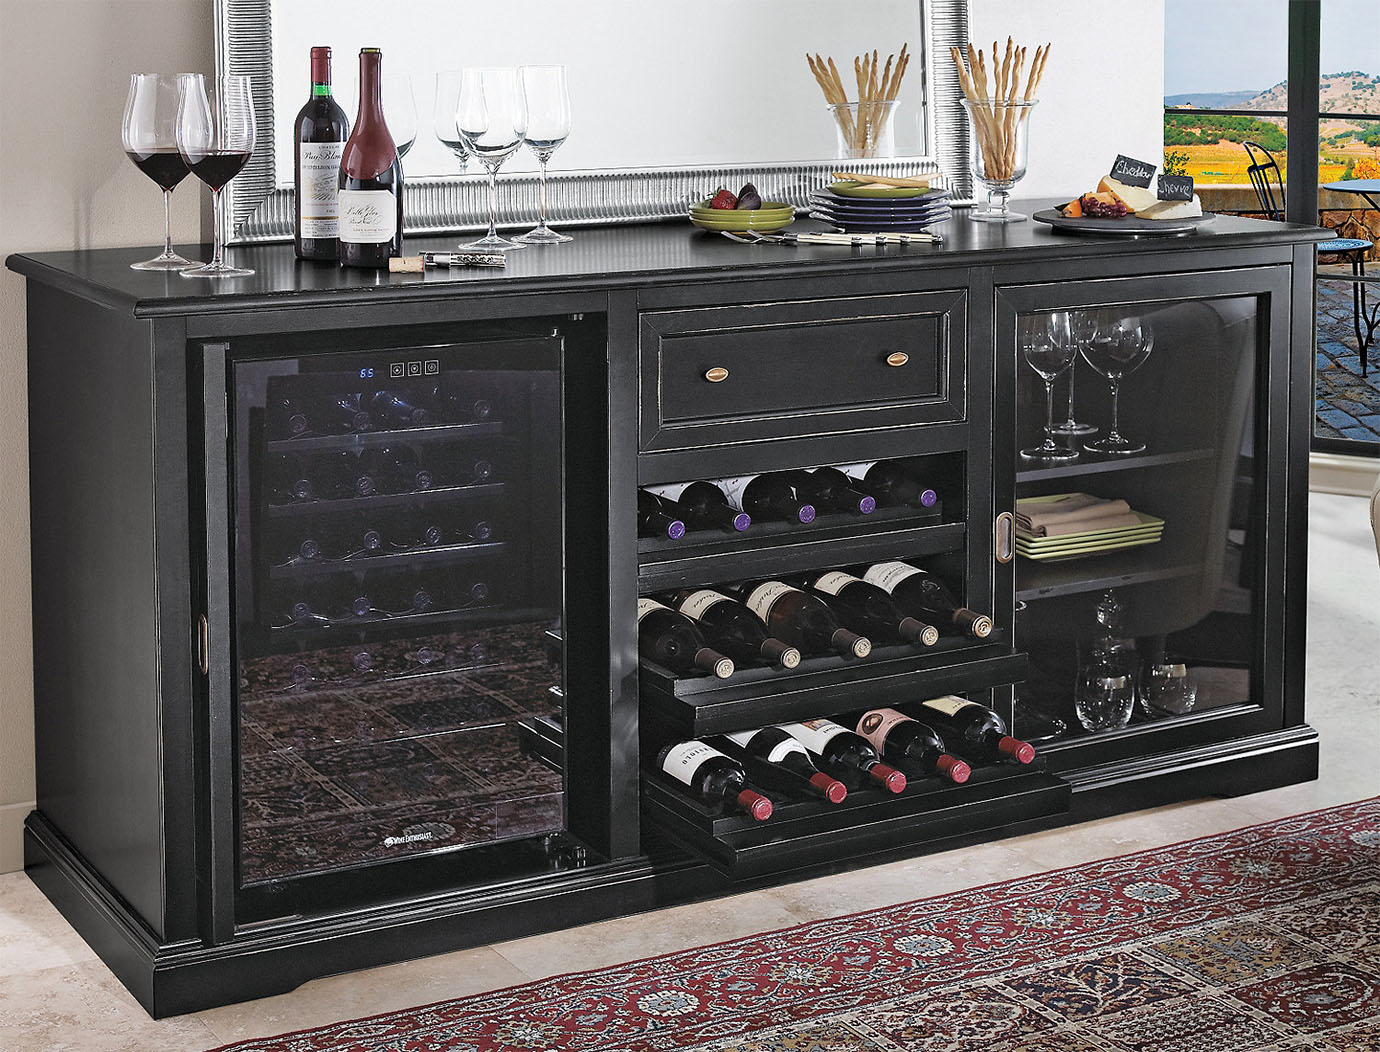 Wine Cooler Storage Unit Buying Guide. Wine Enthusiast 2720332